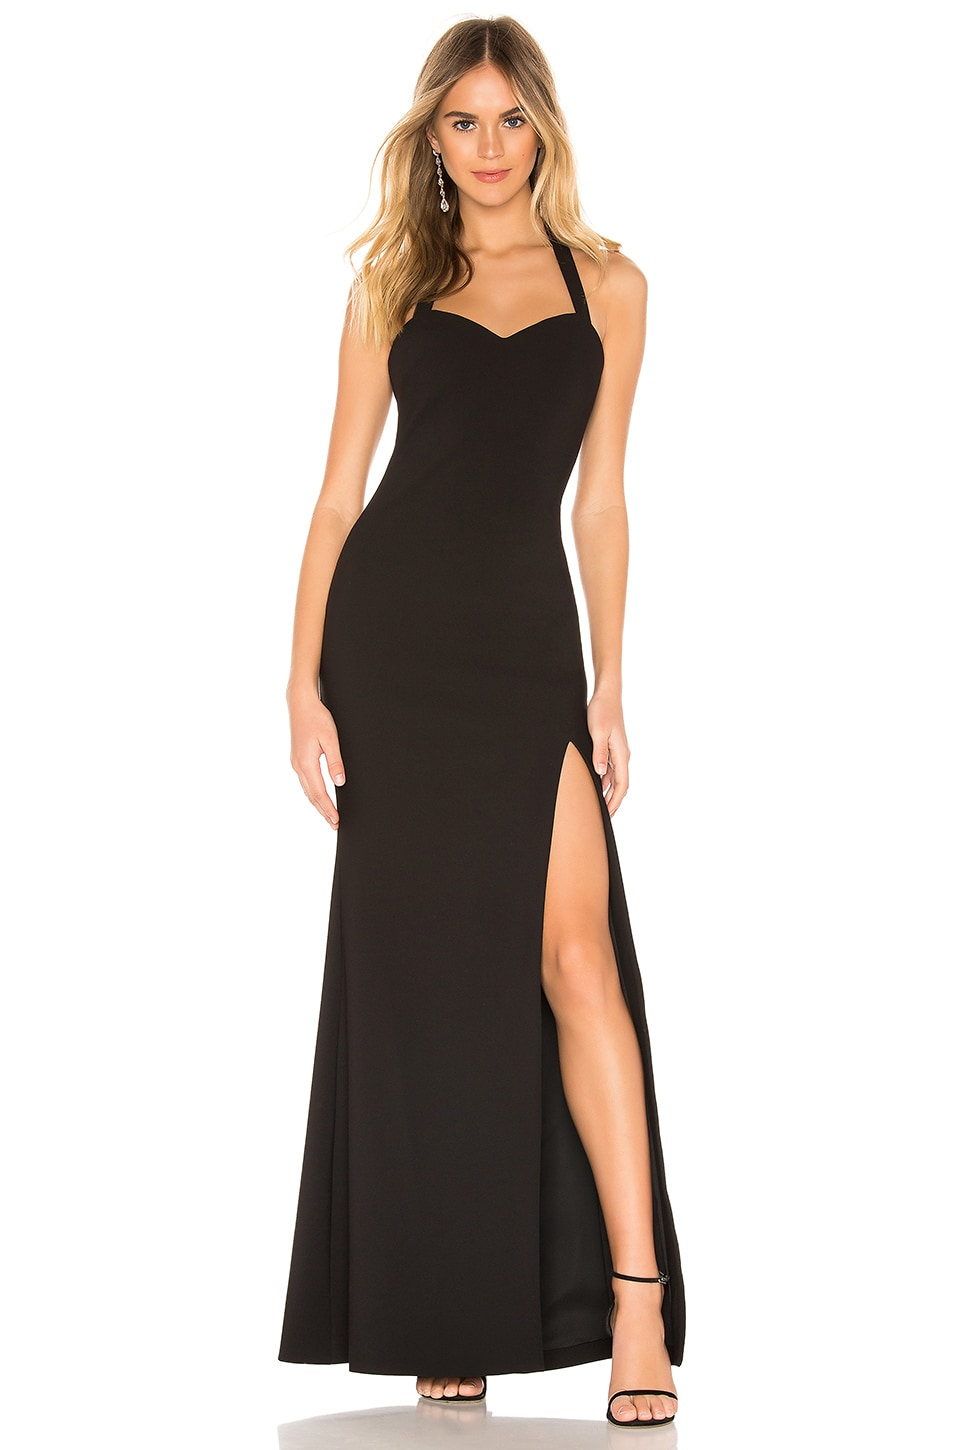 LIKELY Claire Gown in Black